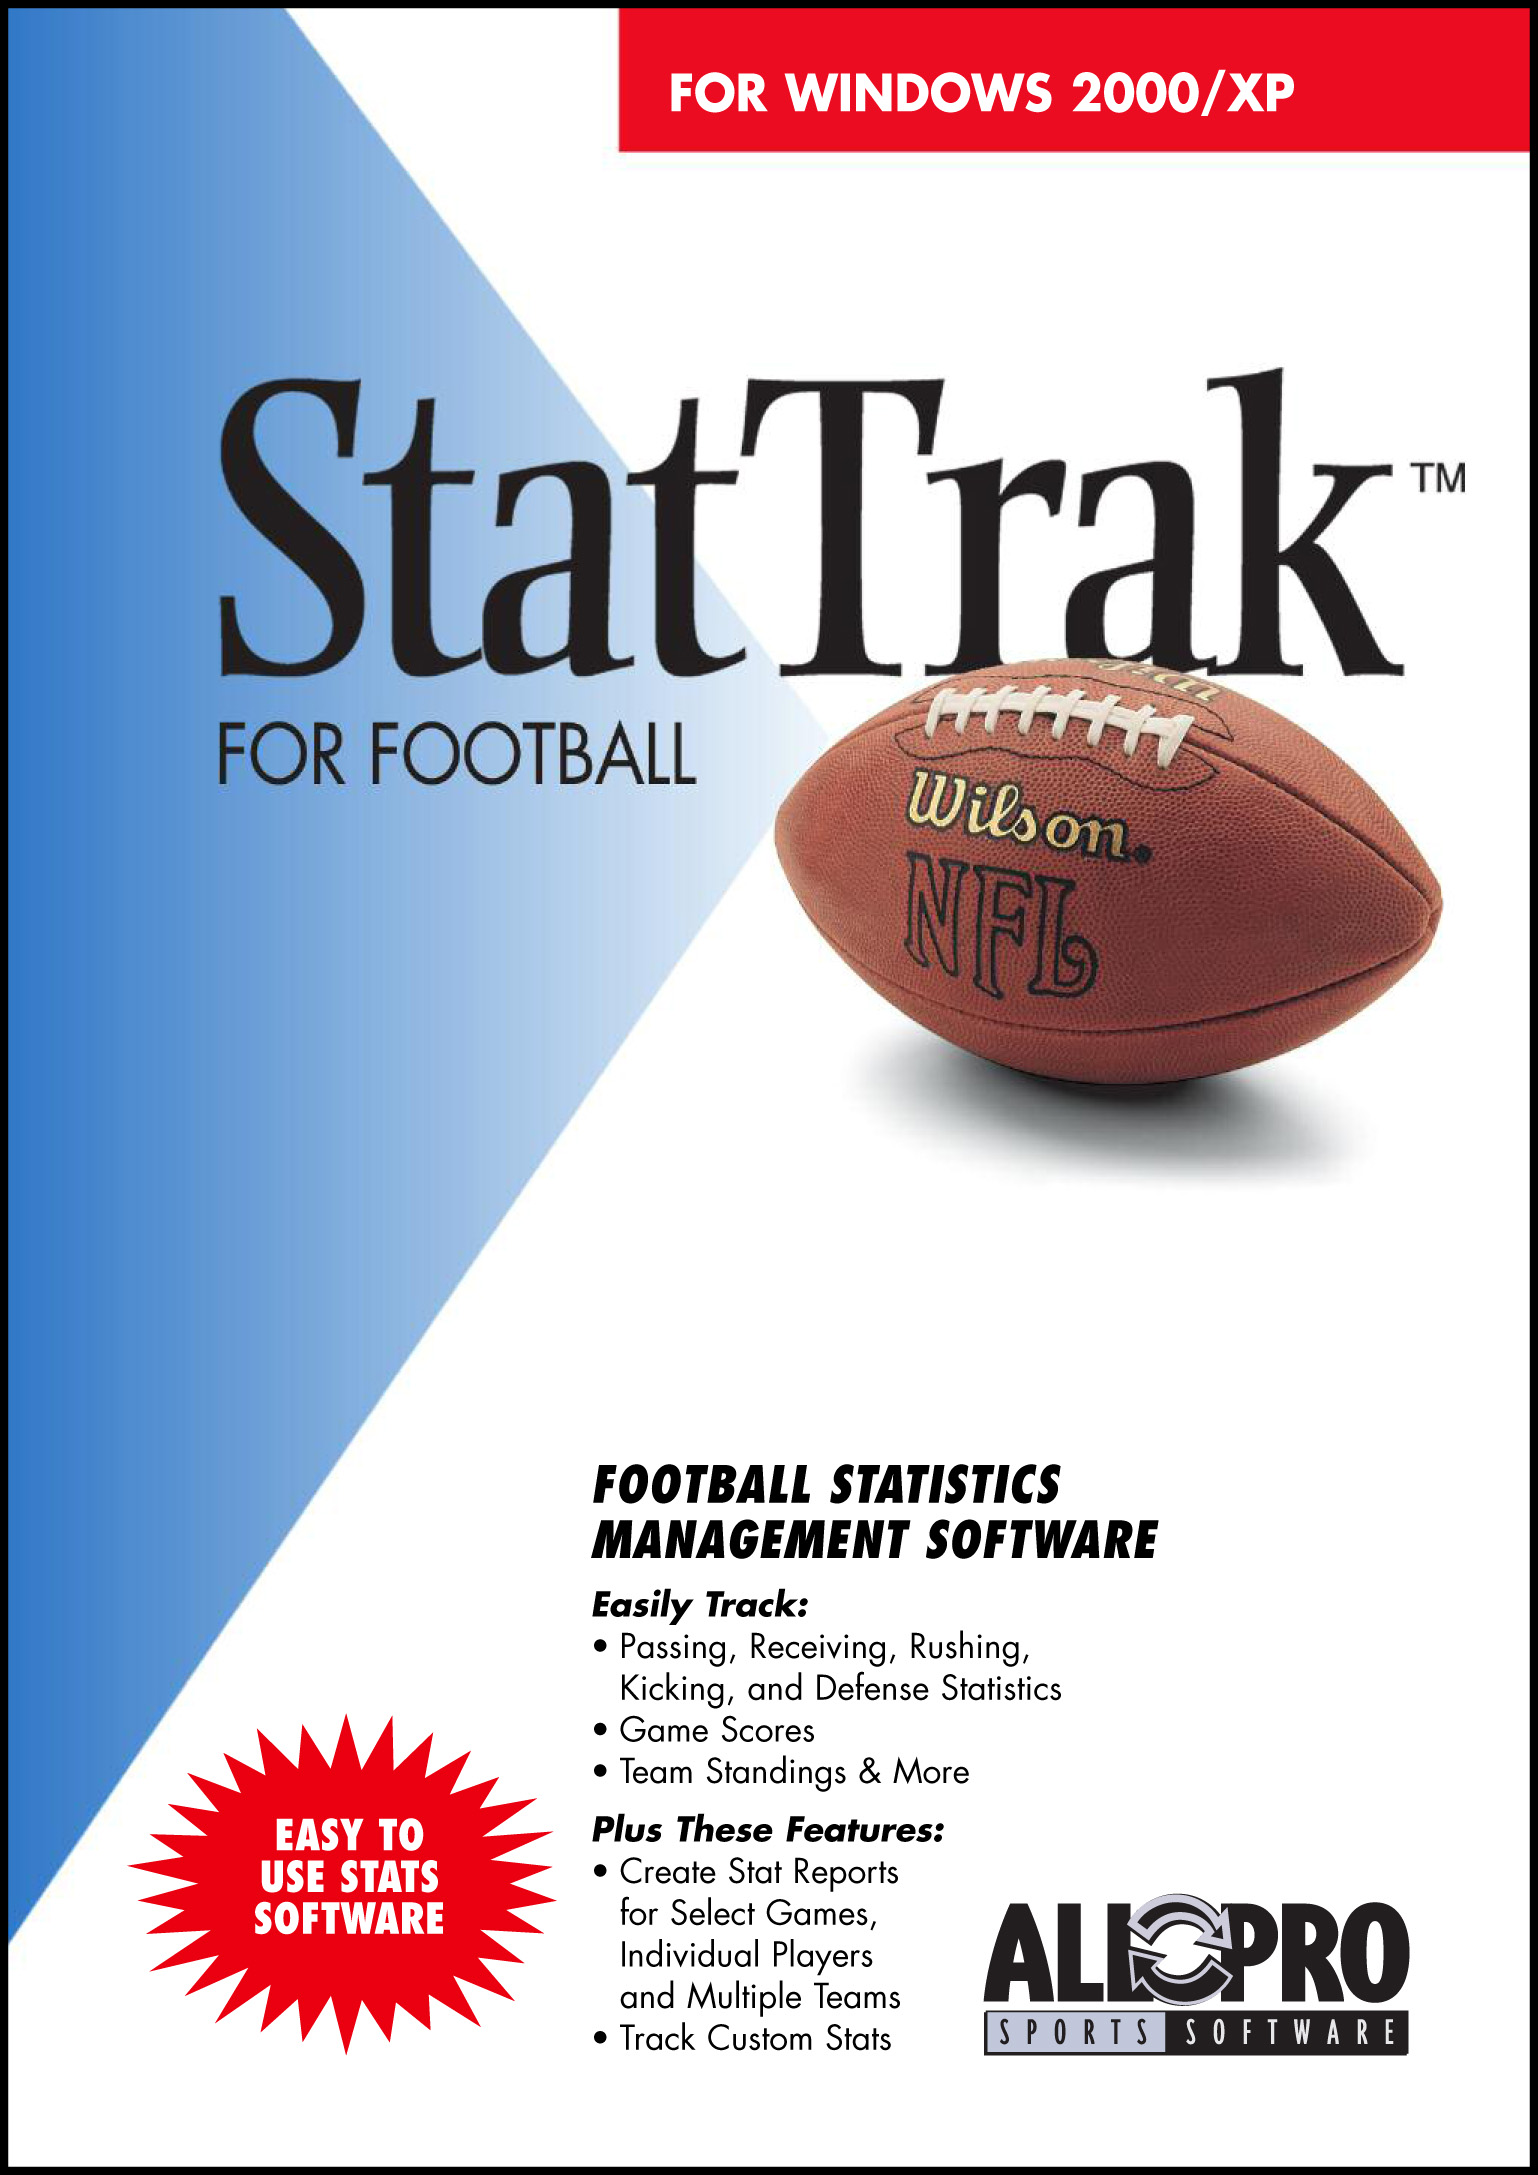 StatTrak for Football